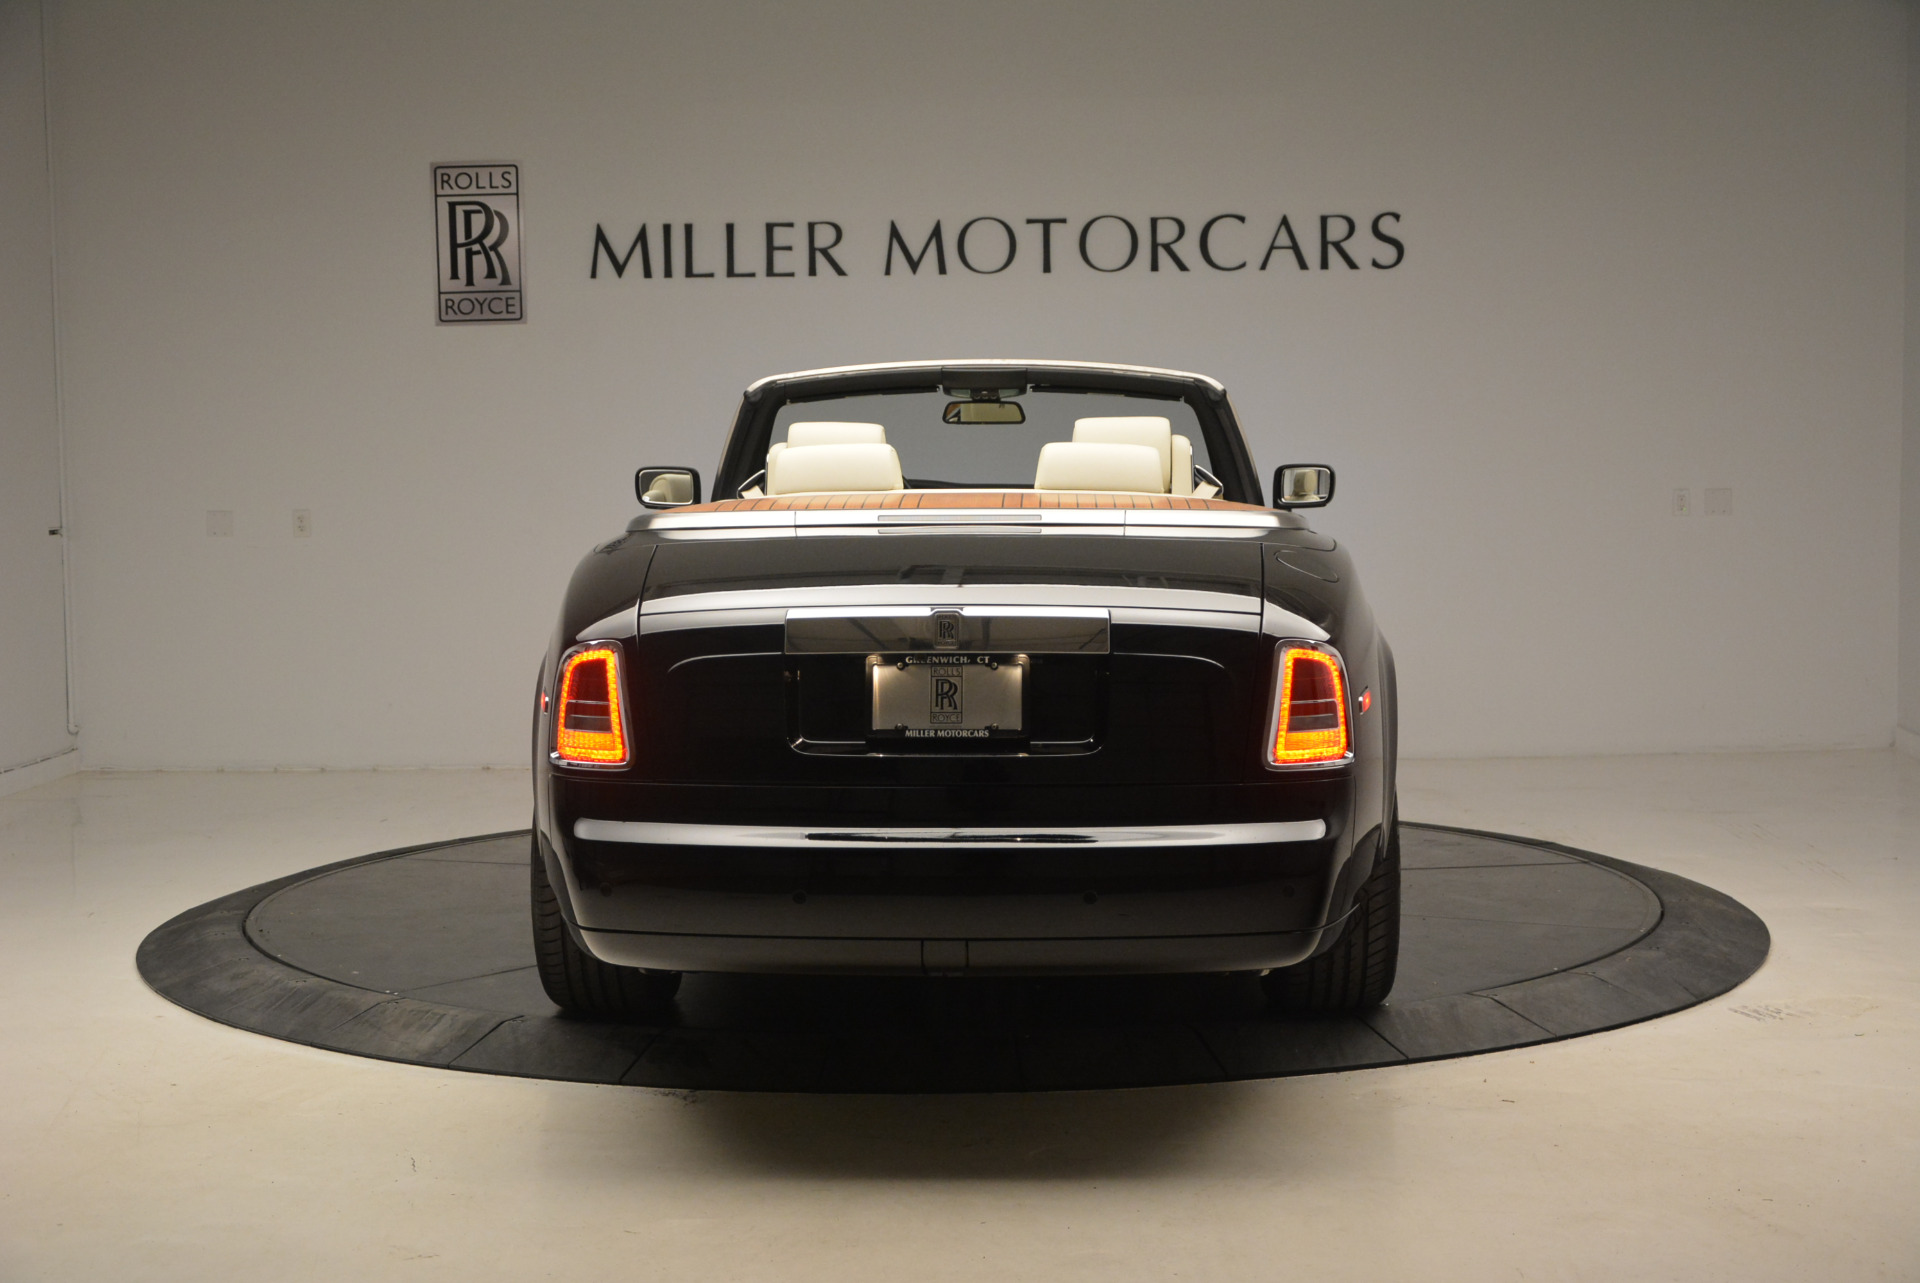 Used 2009 Rolls-Royce Phantom Drophead Coupe  For Sale In Westport, CT 1792_p6